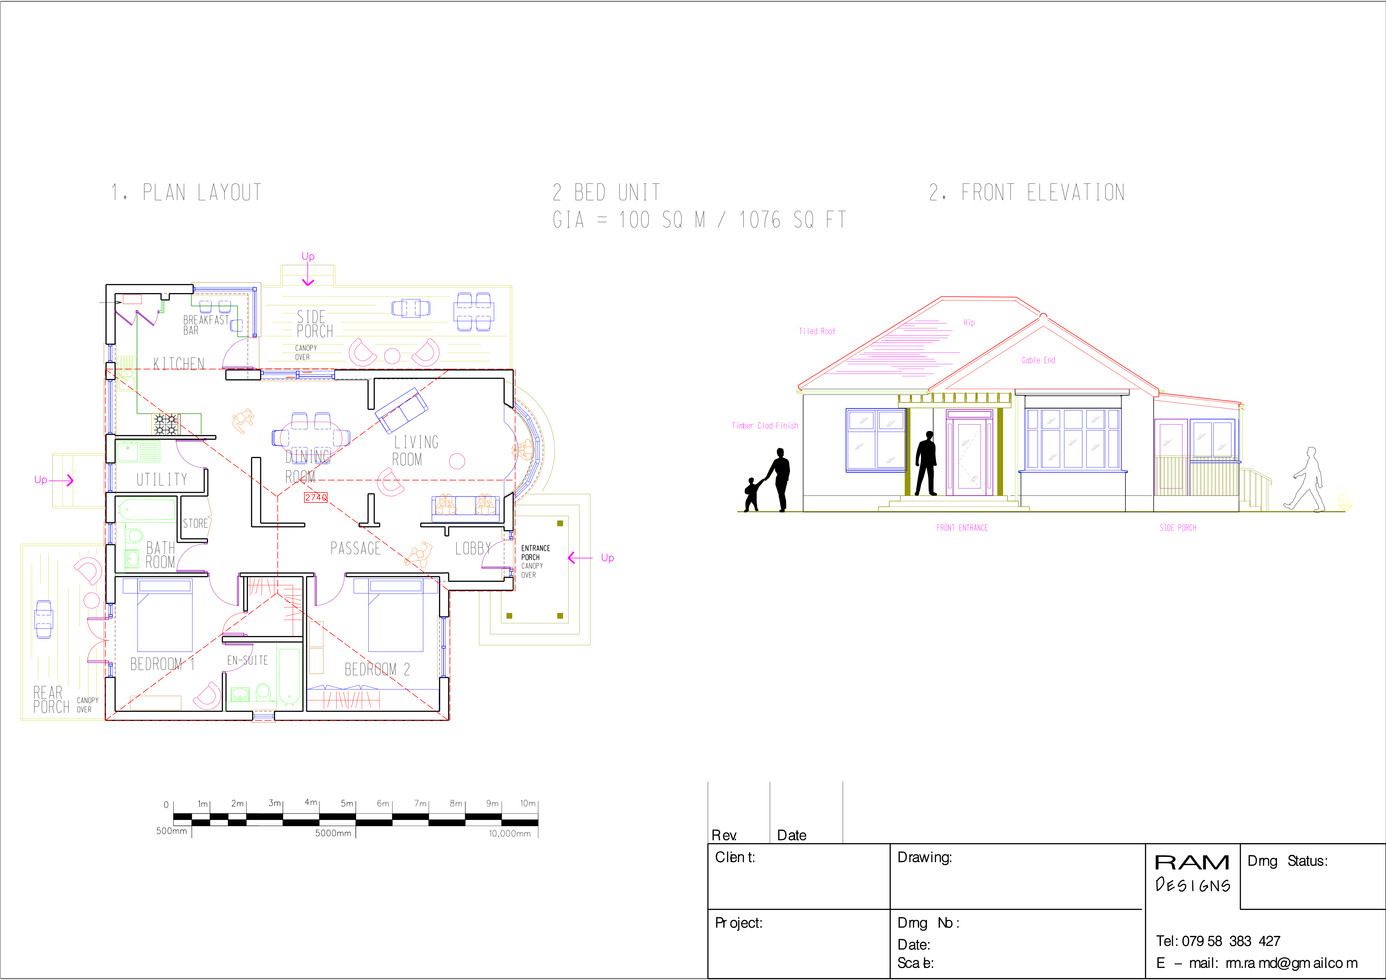 RESIDENTIAL UNIT 2 BED - 2D DRAWING